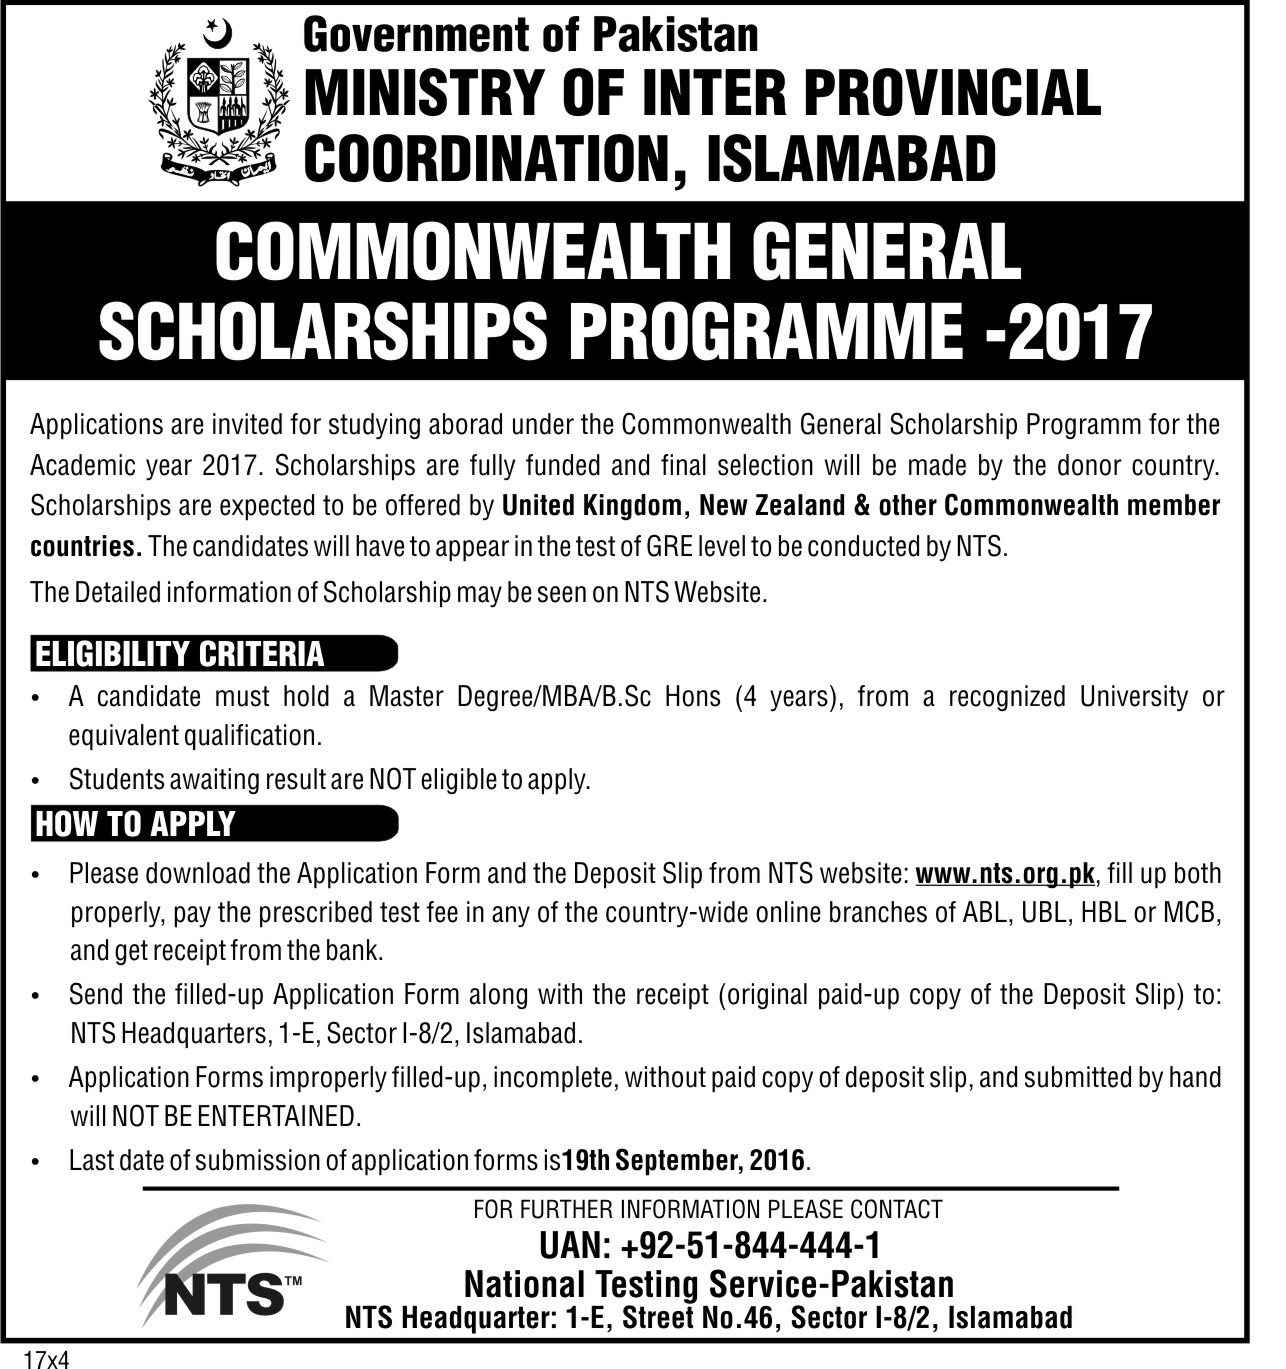 Commonwealth Scholarships from UK and New Zealand for Pakistani Students